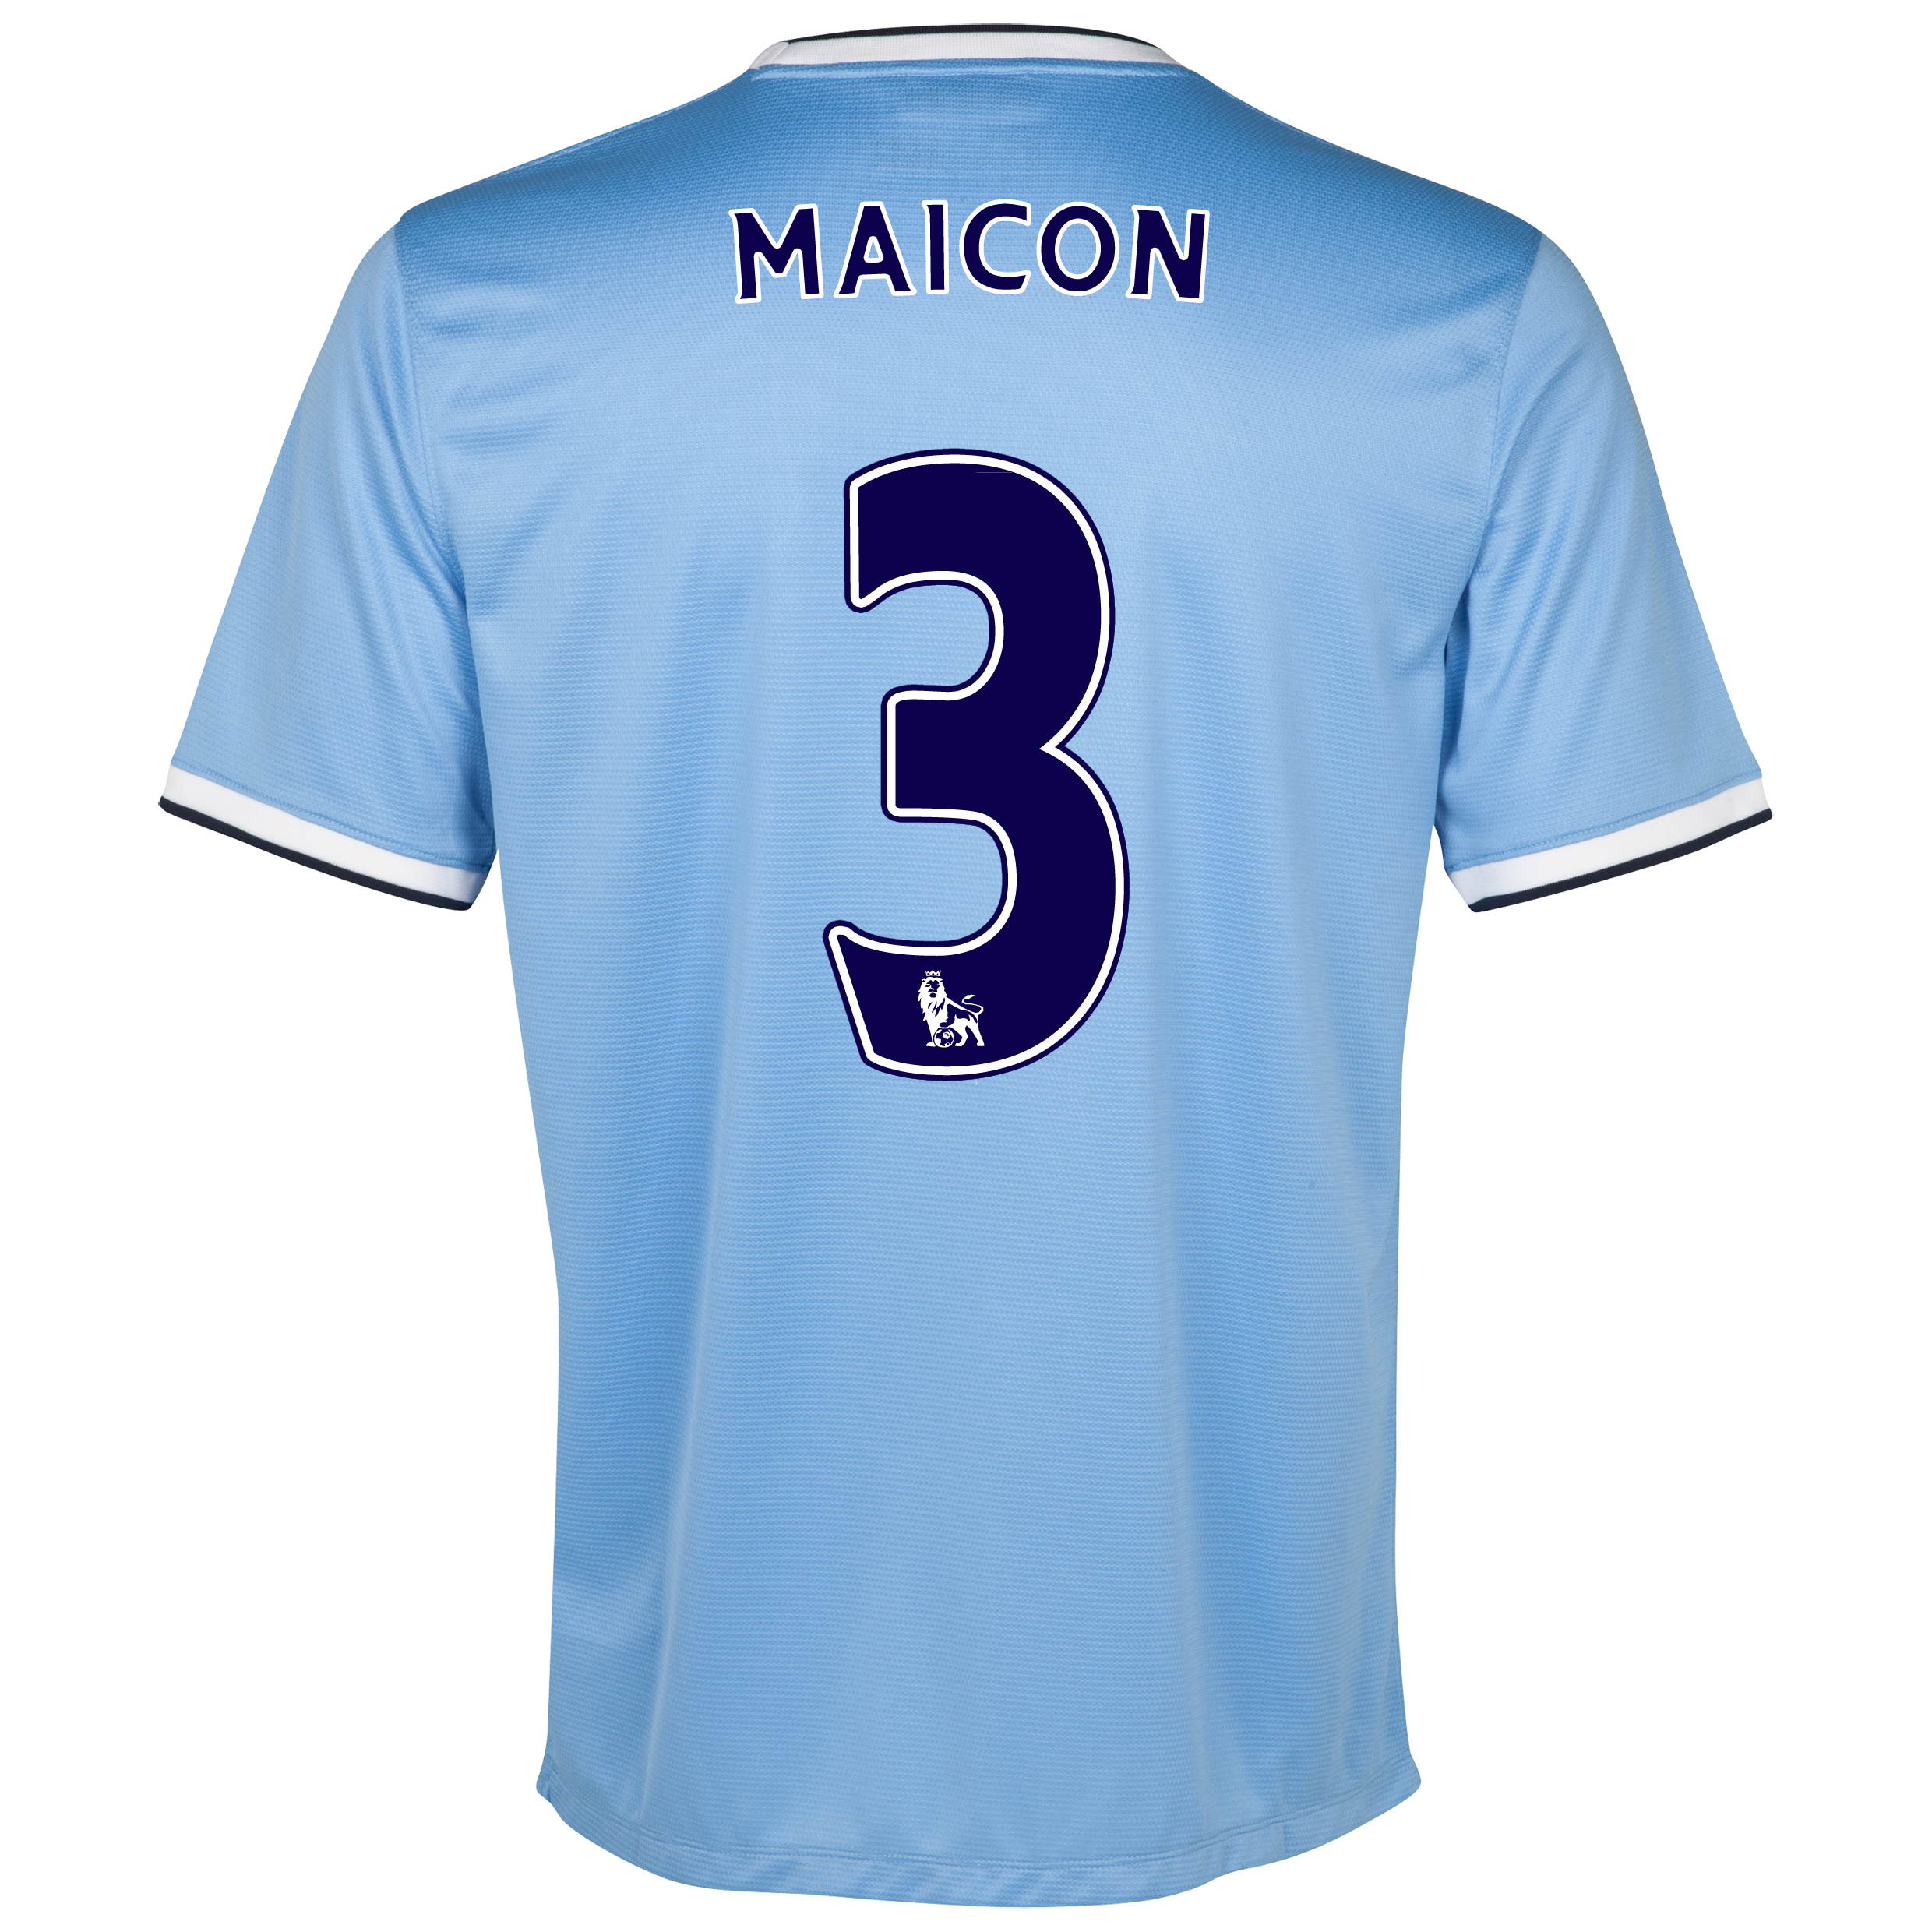 Manchester City Home Shirt 2013/14 with Maicon 3 printing